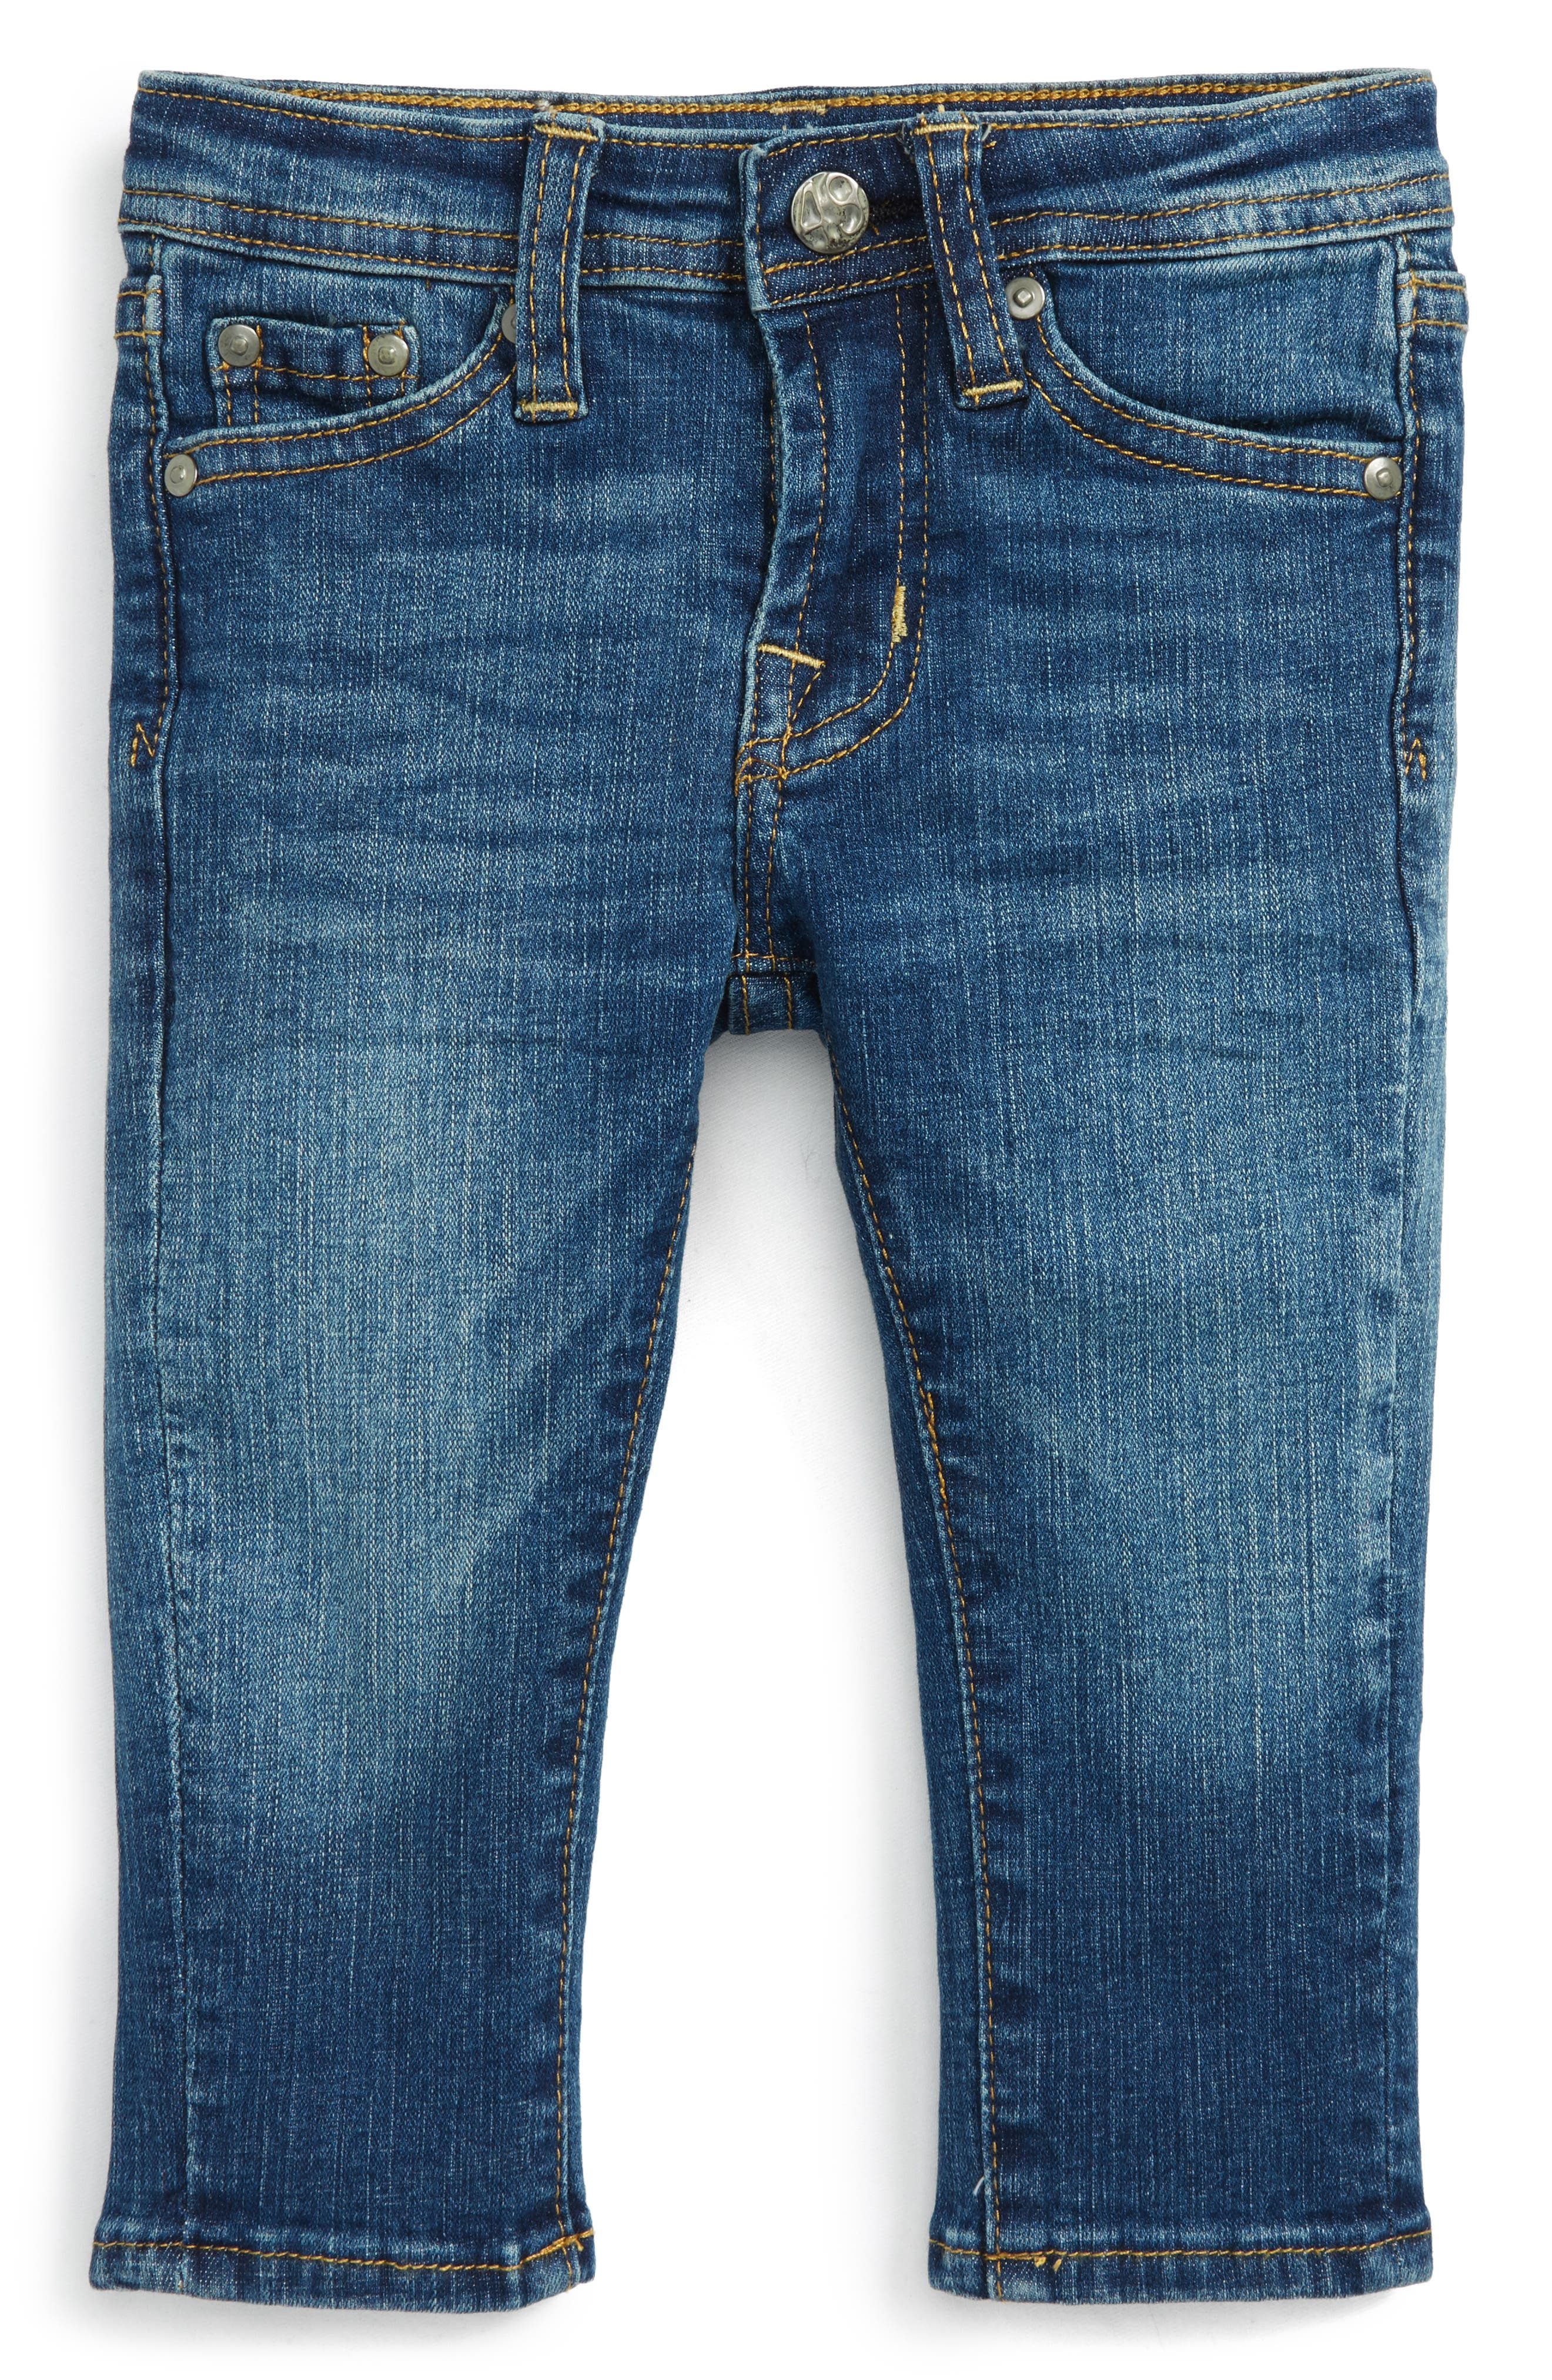 Alternate Image 1 Selected - ag adriano goldschmied kids The Stryker Slim Straight Leg Jeans (Baby Boys)